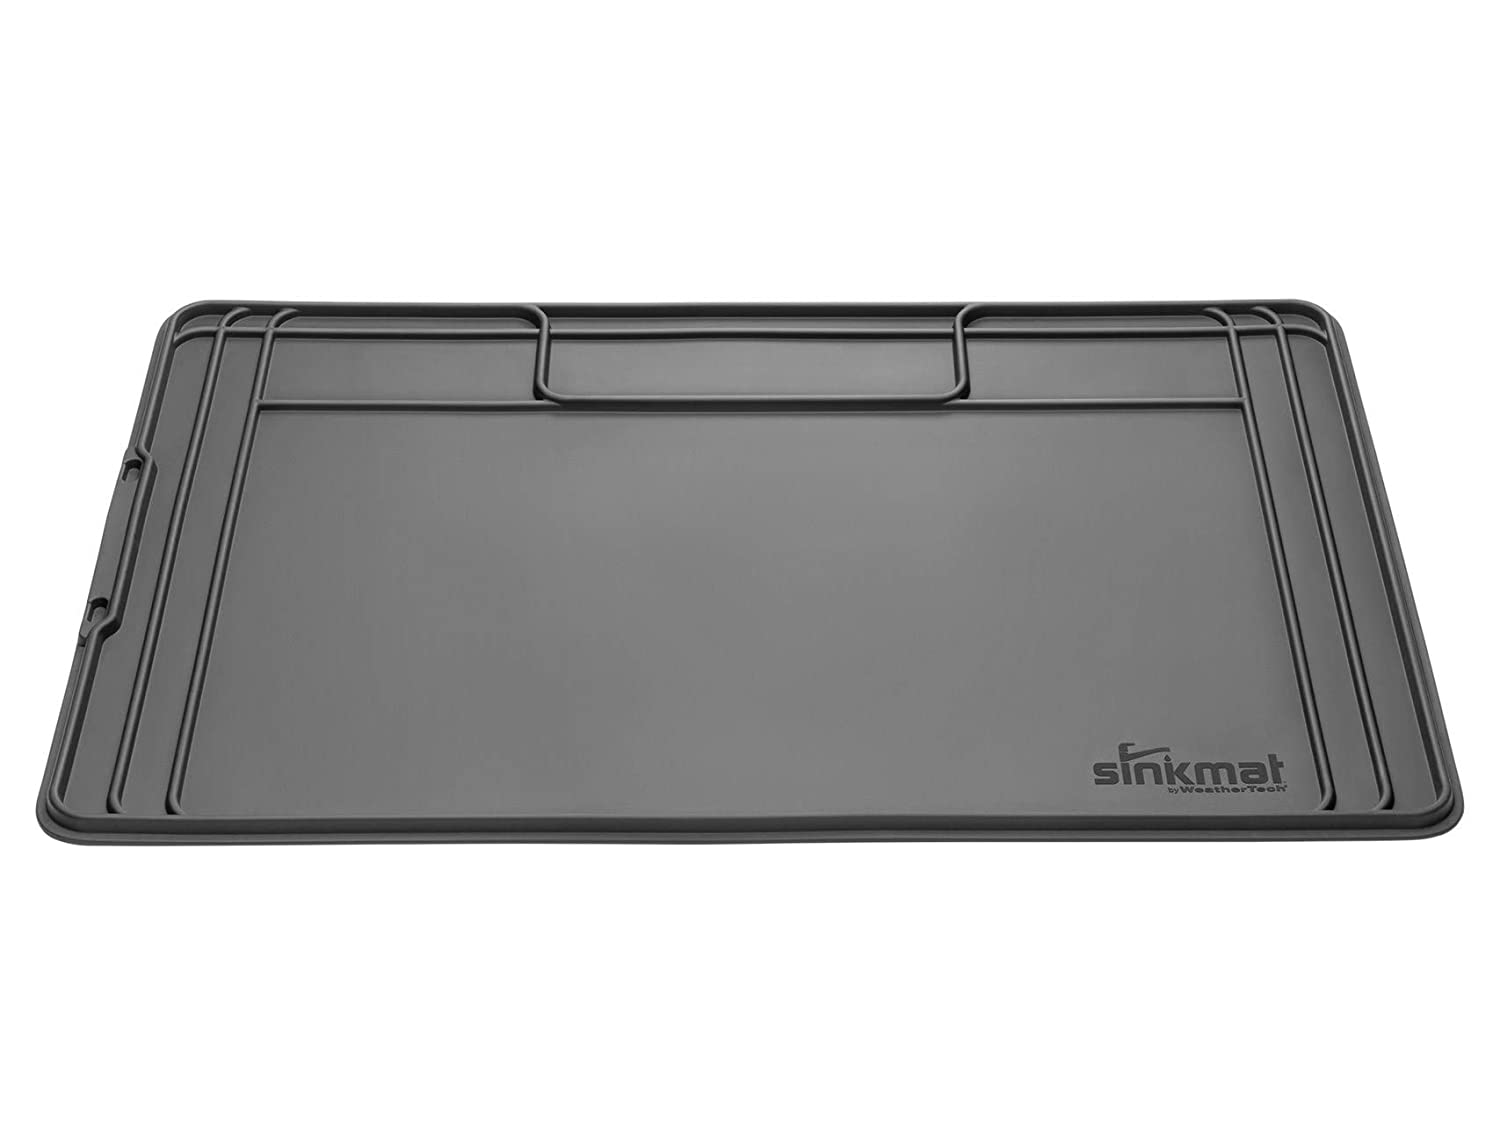 WeatherTech SinkMat - Under the Sink Cabinet Protection Mat (Black)